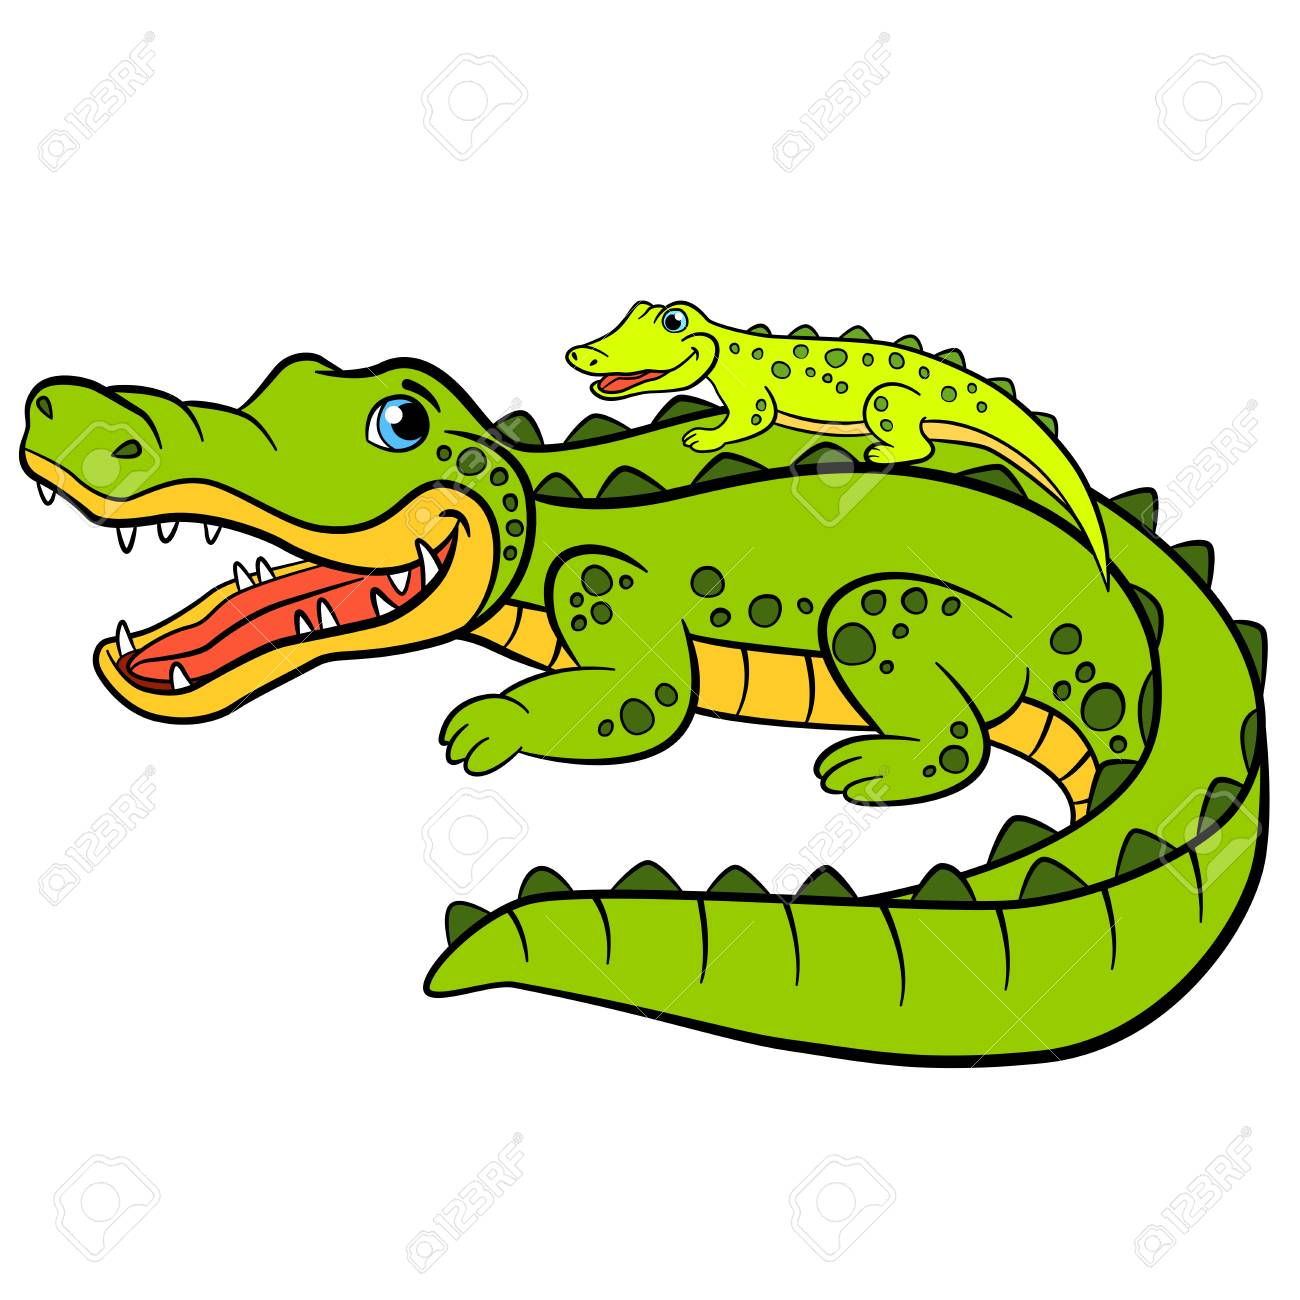 Cartoon Animals For Kids Mother Alligator With Her Little Cute